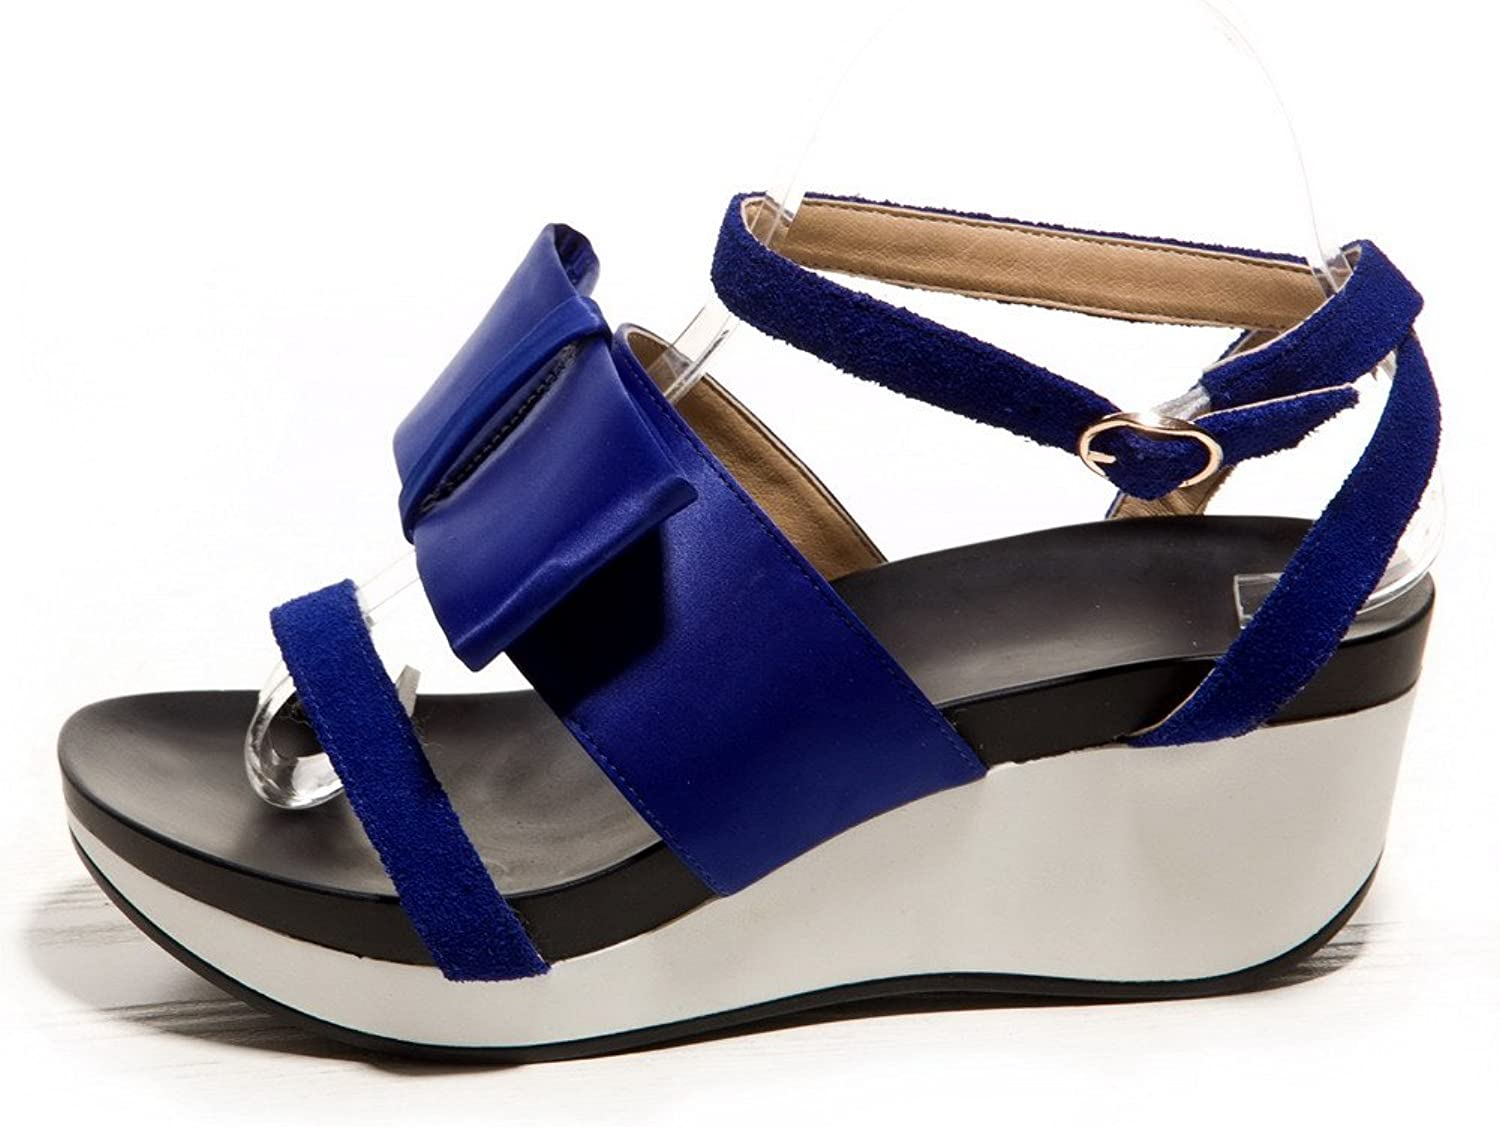 AllhqFashion Women's Round Open Toe Solid Kitten Heels Cow Leather Sandals with Bowknot